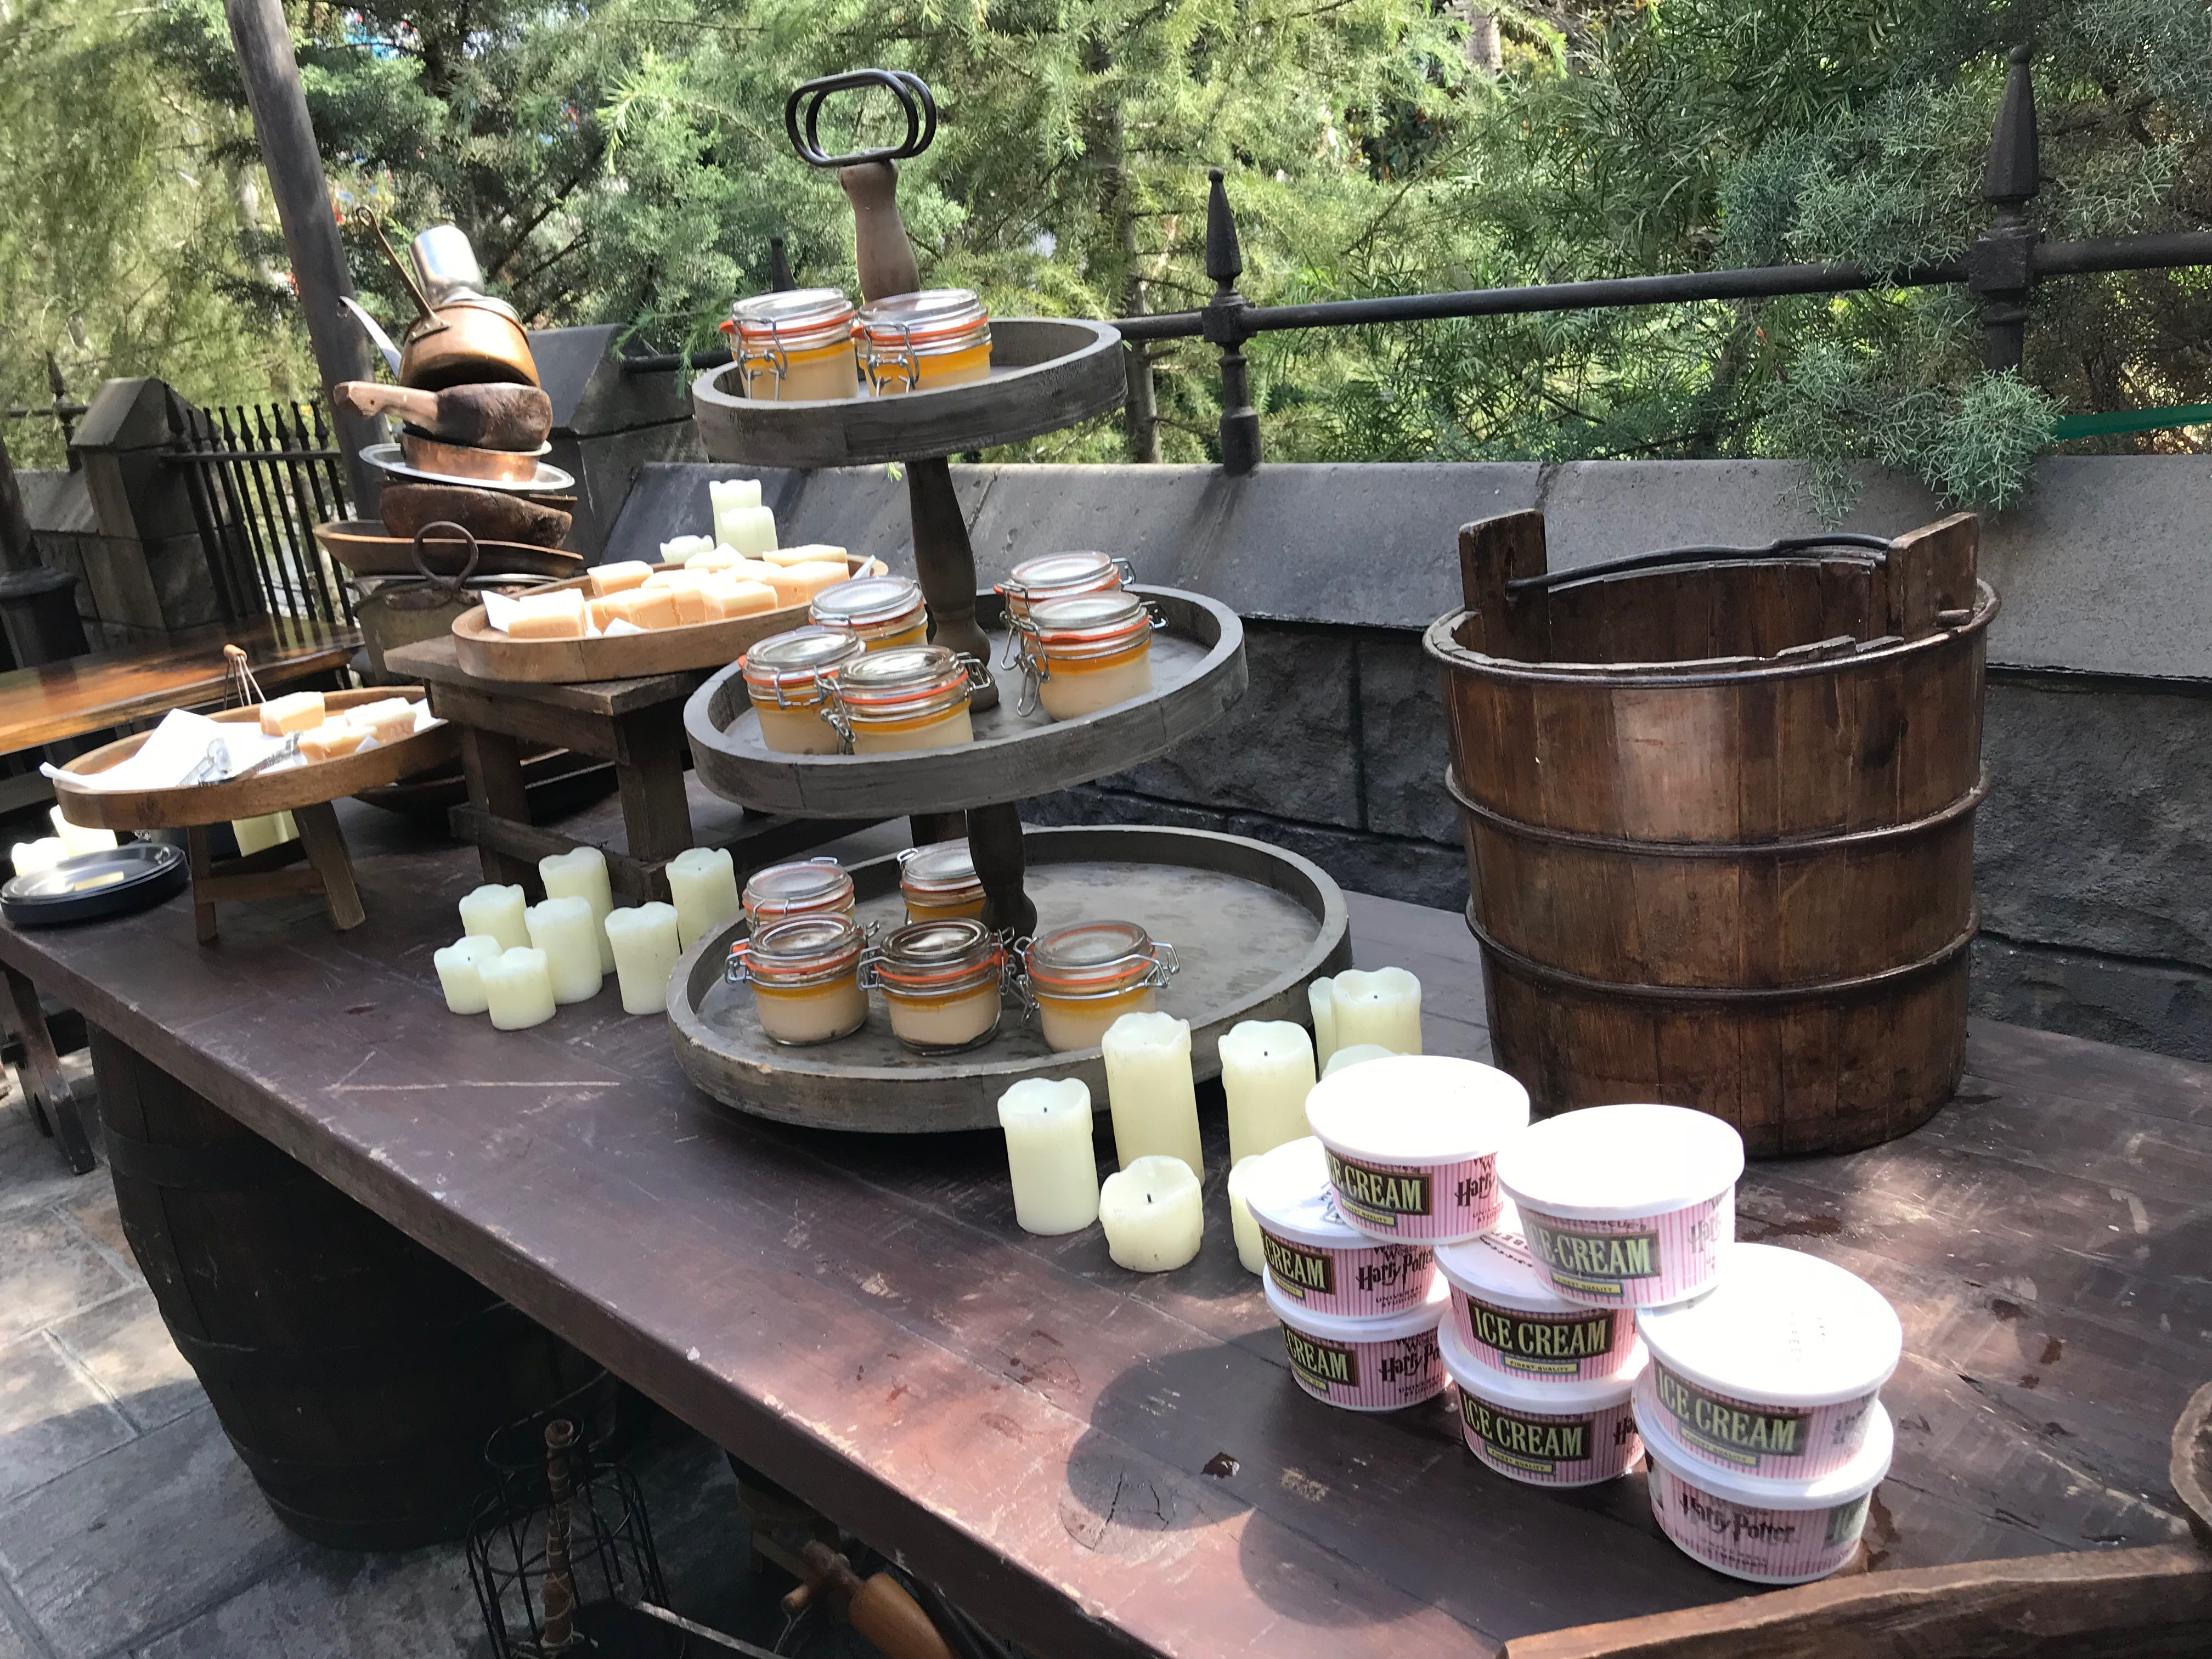 Taste test: New Butterbeer Ice Cream at Harry Potter's Wizarding World   USA Today